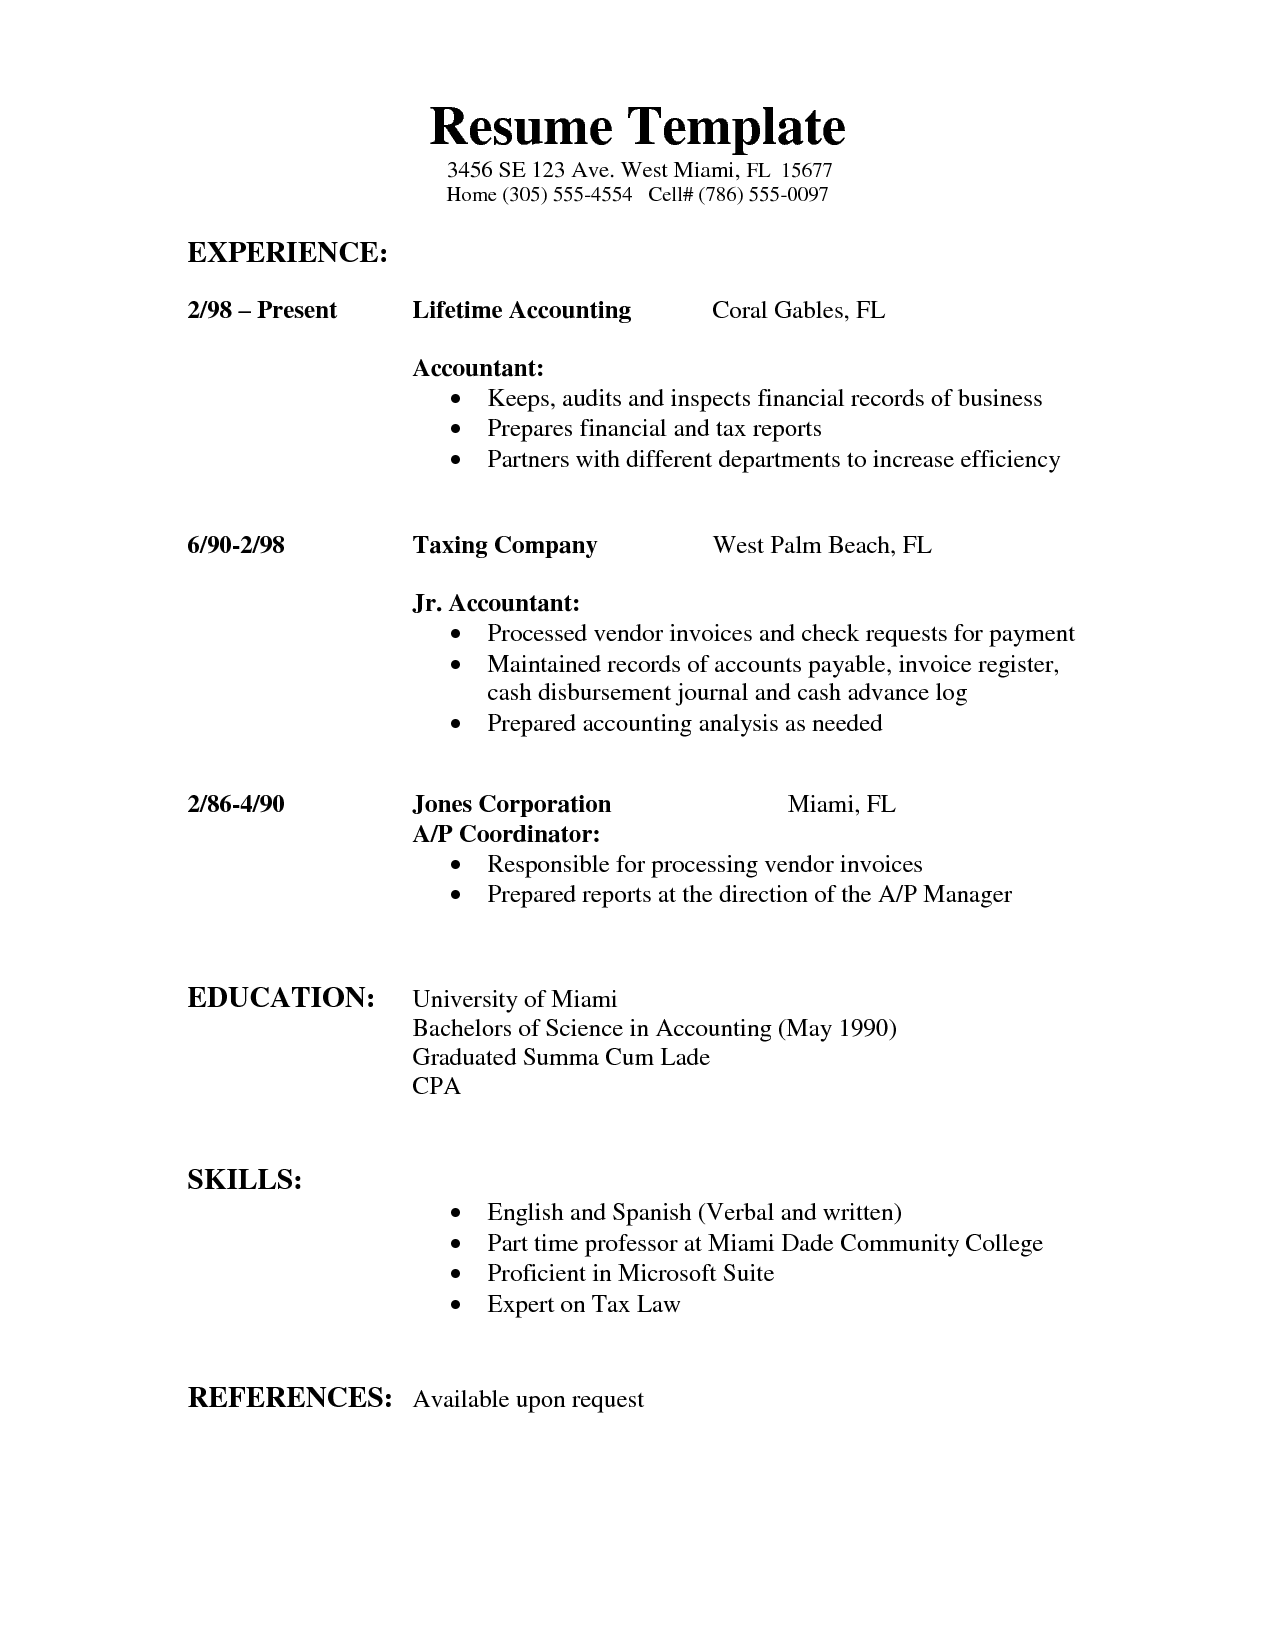 examples resumes examples resumes entry sample resume level hospital job ideas fascinating example job resume examples